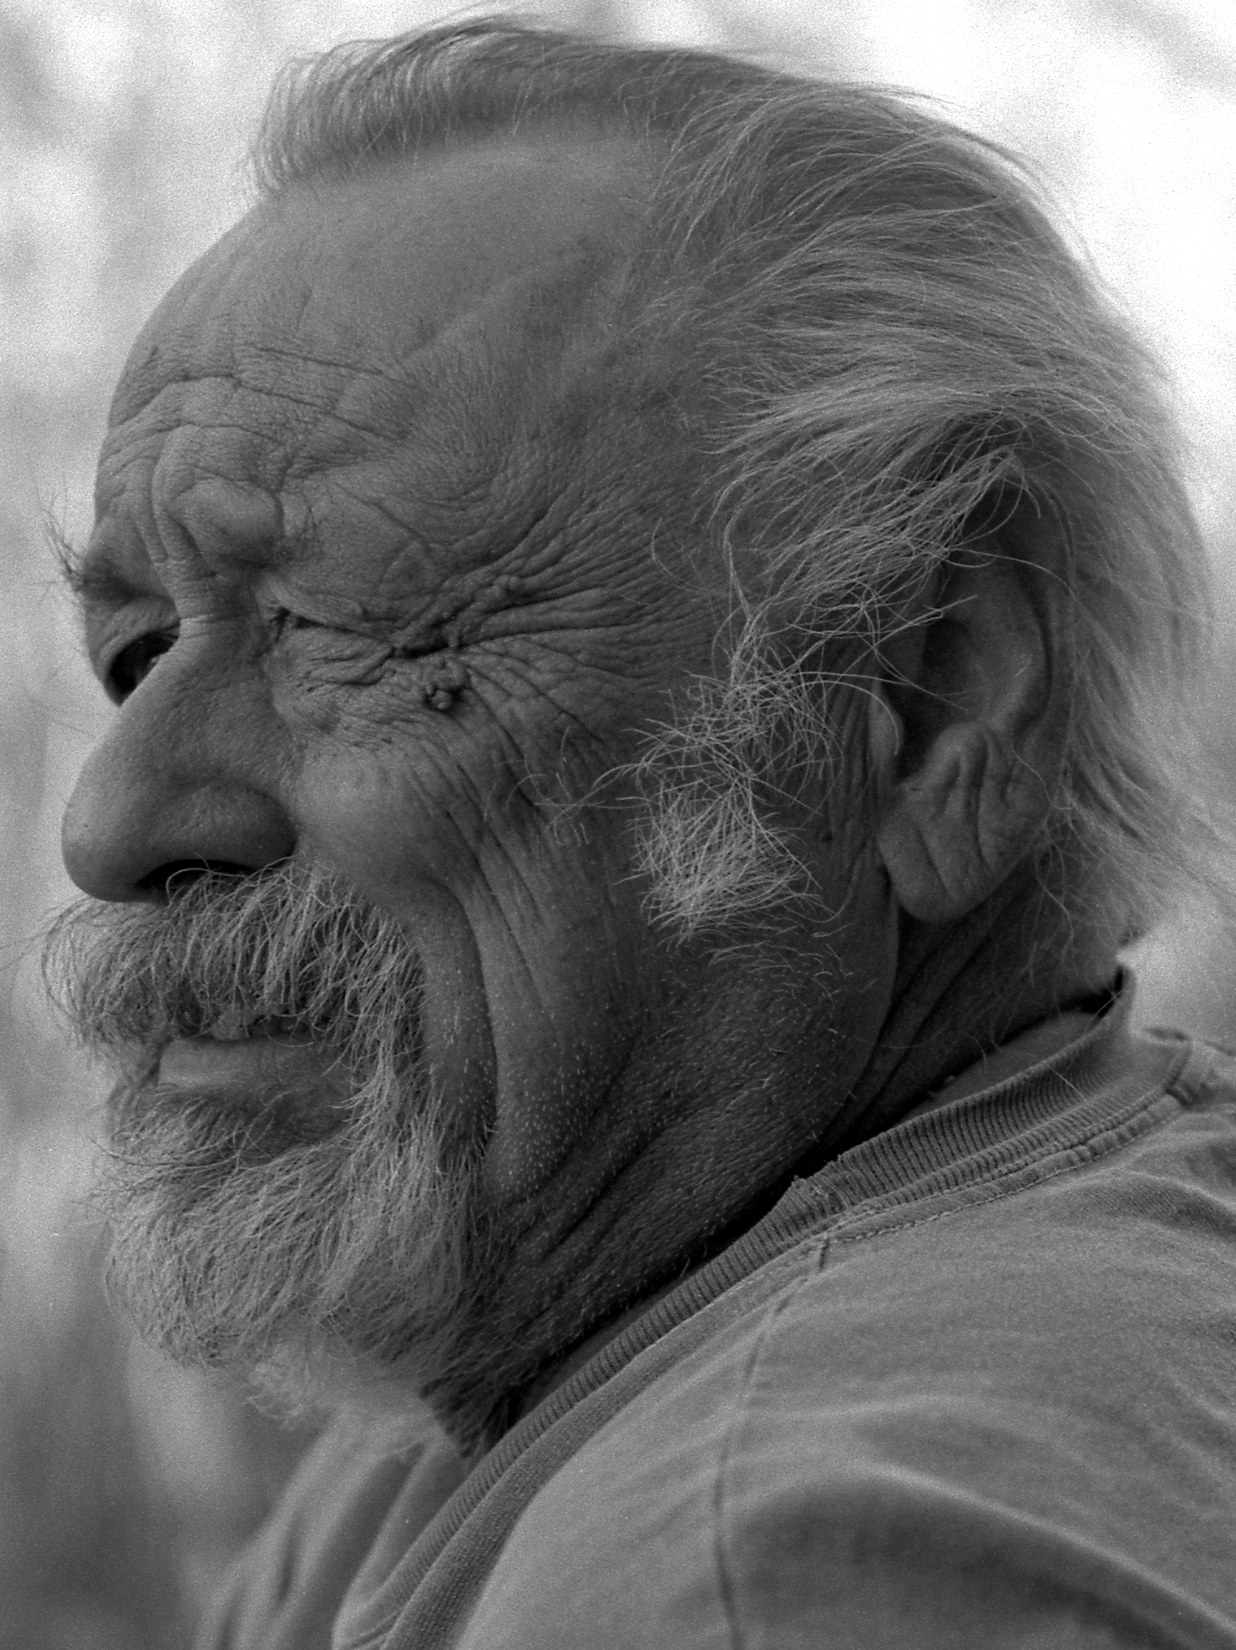 Jim Harrison is the author of more than 30 books, including Legends of the Fall and The Farmer's Daughter.